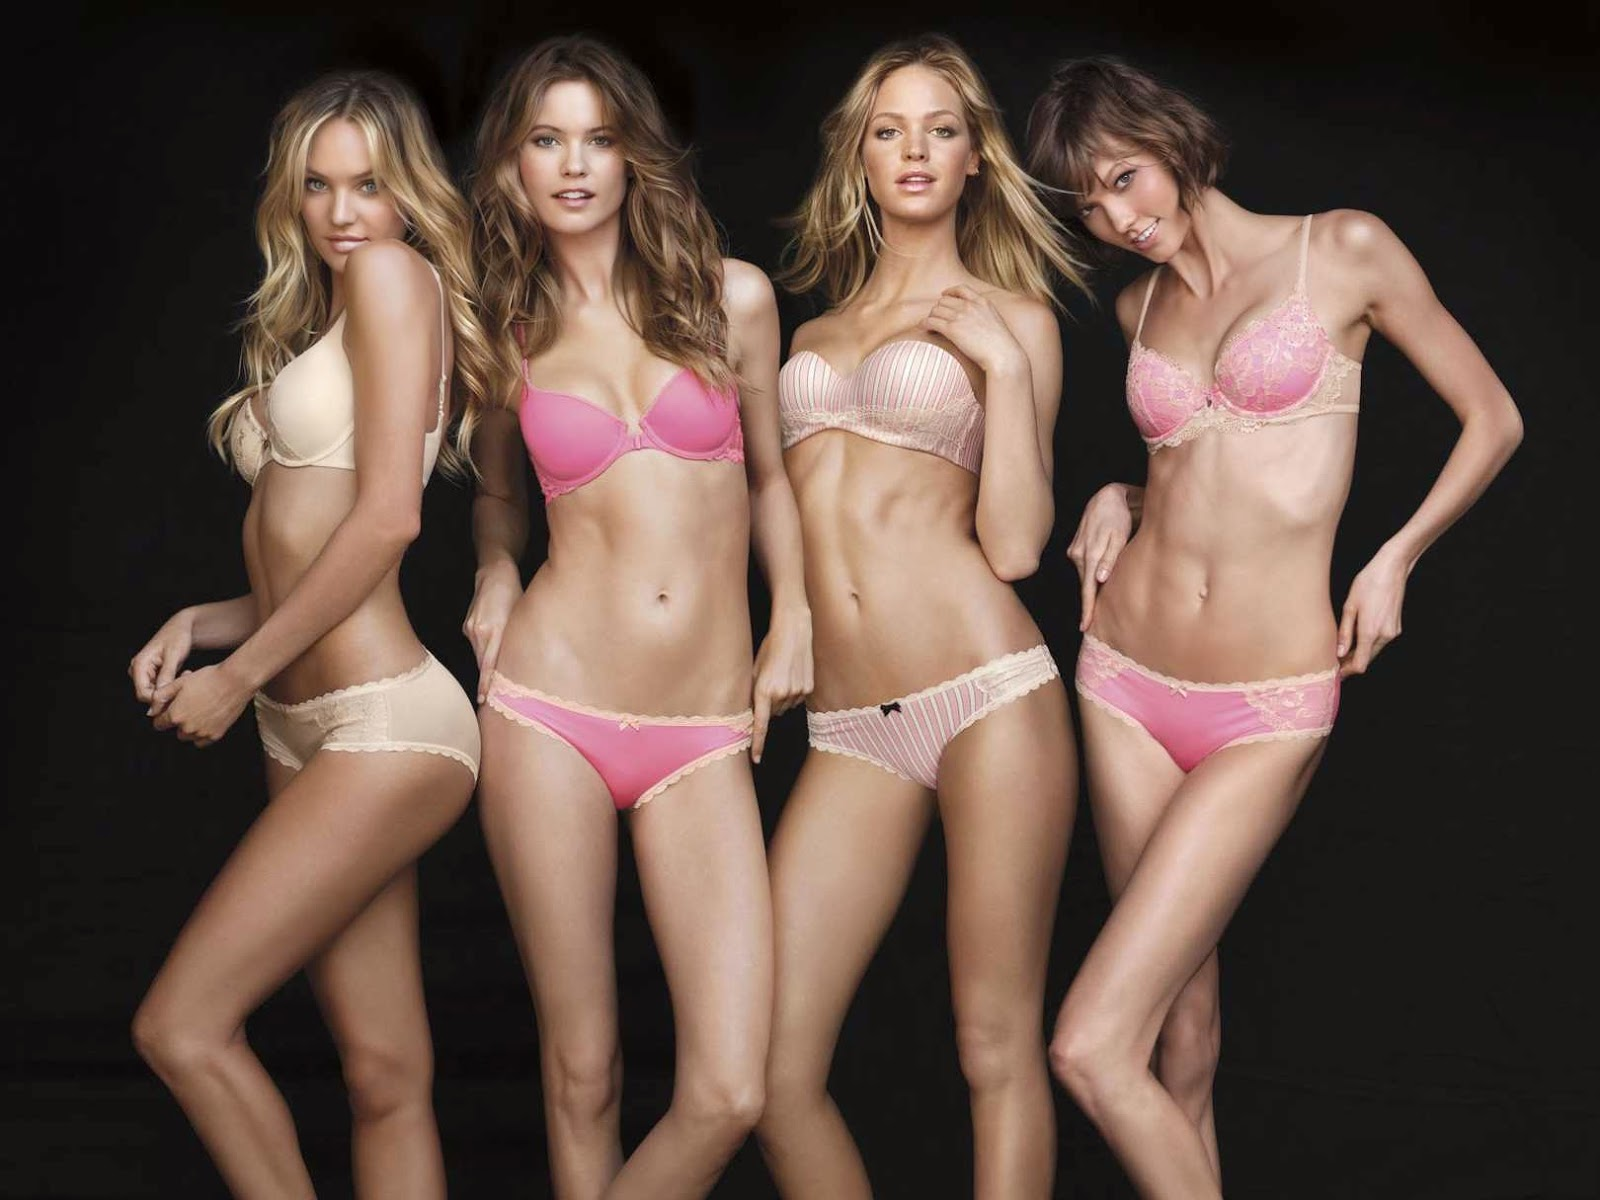 """The Angels started out as one of Victoria's Secret's lingerie lines. The models featured in the original advertising televised campaign in 1997 were Helena Christensen, Karen Mulder, Daniela Peštová, Stephanie Seymour, and Tyra Banks, with Yasmeen Ghauri being featured in print. In February 1998, the Angels made their runway debut at Victoria's Secret's 4th annual fashion show, with Chandra North filling in for Christensen. Due to their growing popularity, the brand used those models in several other advertising campaigns alongside Laetitia Casta and Inés Rivero, Christensen was the first to leave the brand. Nowadays, the term Angels refers to the brand's contracted spokeswomen, while the fashion show models are referred to as """"Runway Angels"""". In 2004 due the Superbowl controversy, instead of a televised show, Victoria's Secret sent its 5 contract models on a tour called Angels Across America. The Angel line-up has been changed multiple times over the years, with one being officially released before each fashion show. The brand currently lists 8 supermodels on its website, and had a Facebook application in 2013-2014 highlighting the Angels (then including Miranda Kerr and Erin Heatherton) as well as Lais Ribeiro, Toni Garrn and Barbara Palvin. Among other recognitions, the Victoria's Secret Angels were chosen to be part of People magazine's annual """"100 Most Beautiful People in the World"""" issue in 2007 and became the first trademark awarded a star on the Hollywood Walk of Fame on November 13, 2007.[citation needed] Other notable spokesmodels for the brand have included: Claudia Schiffer, Eva Herzigová, Oluchi Onweagba, Jessica Stam, Ana Beatriz Barros, and Emanuela de Paula, as well as a handful of celebrities such as Taylor Momsen."""